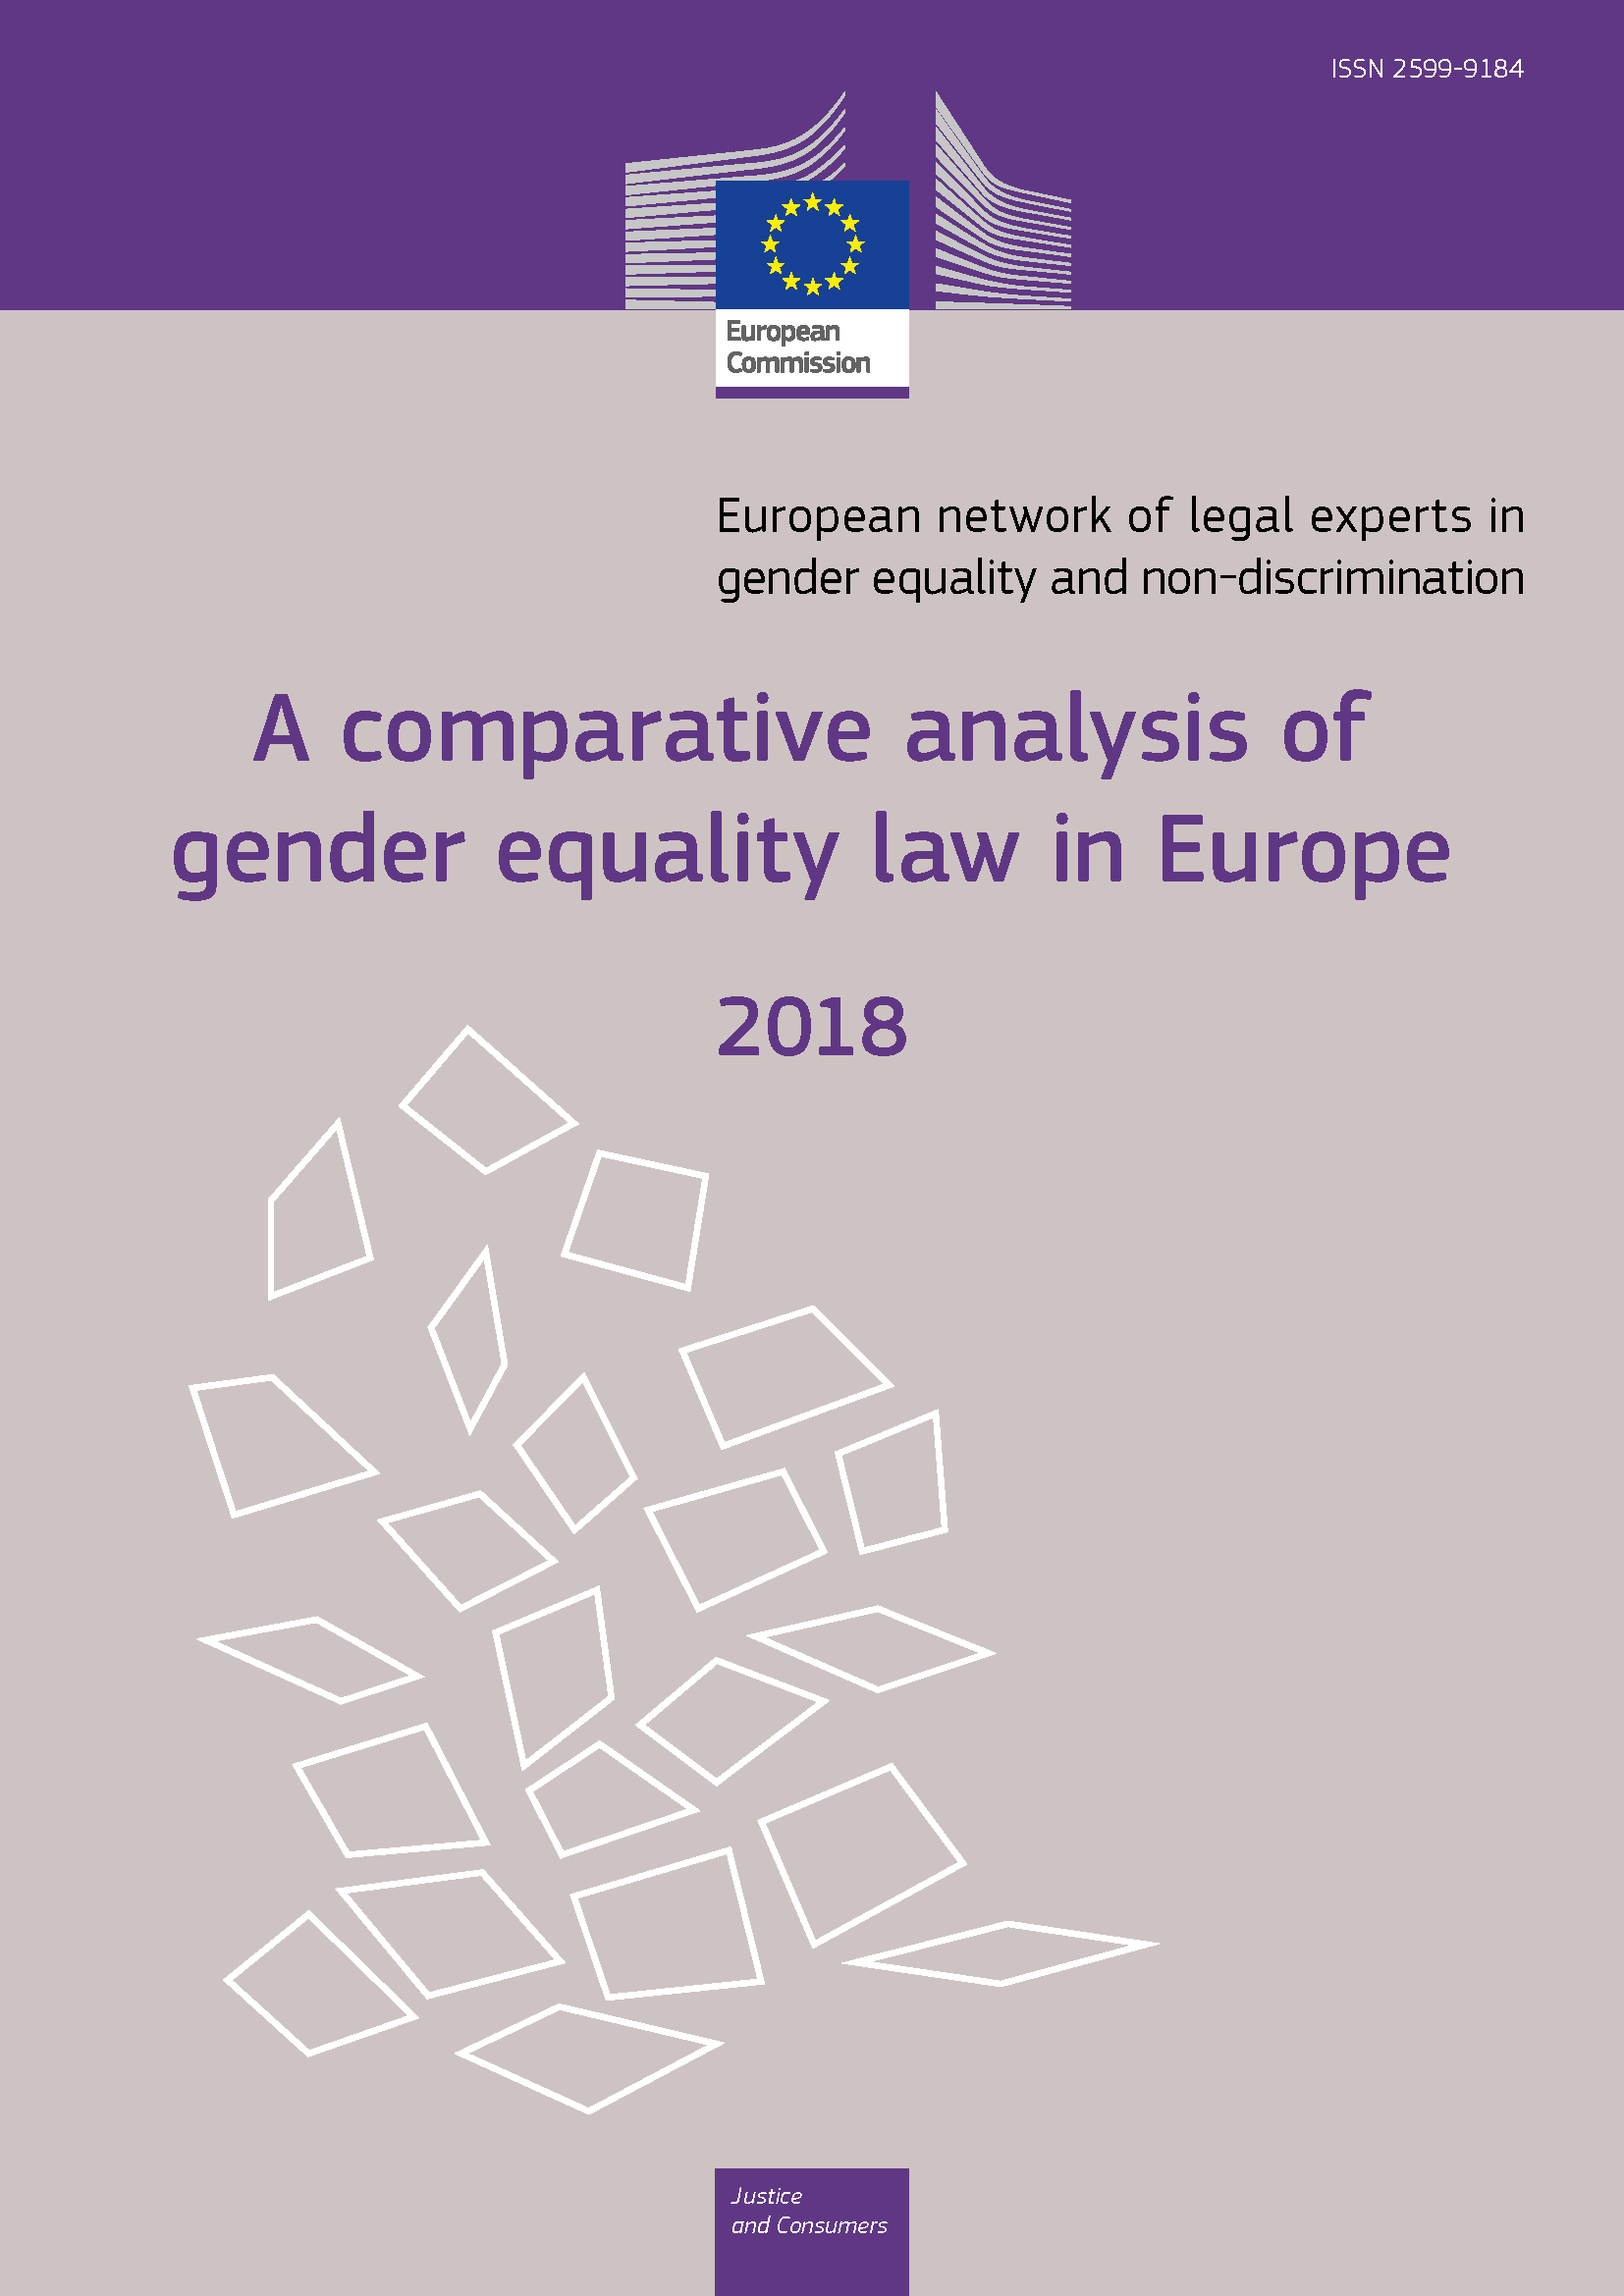 Cover image of A comparative analysis of gender equality law in Europe 2018